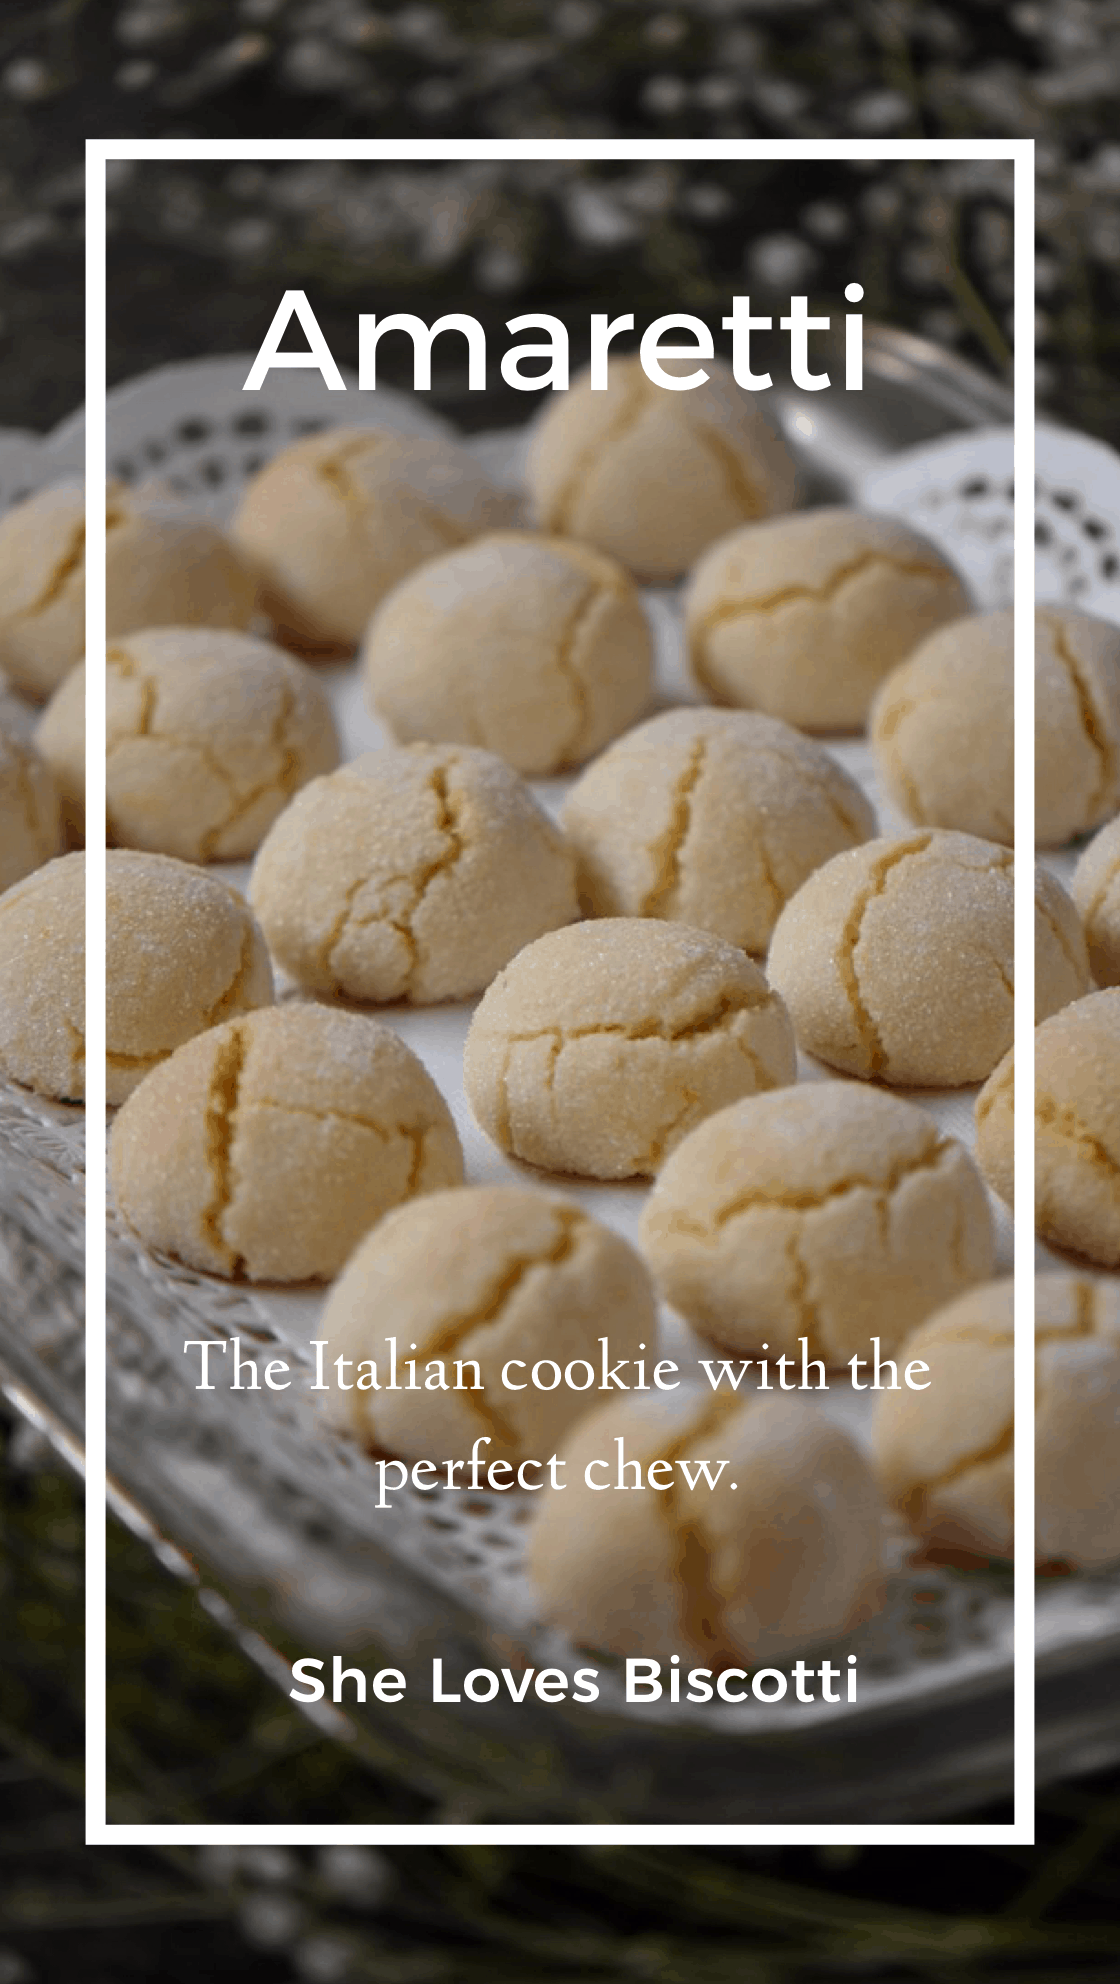 Did you ever think it was possible to make Soft Amaretti Cookies just like the ones that you find in Italian bakeries?  Come and see how easy these glutenfree cookies are to make.  #amaretti  #holiday #baking #Italian #christmascookie #cookies #hostessgift #amaretti #Italiancookies #almondflour #almonds #amarettibiscuits #amarettimorbidi